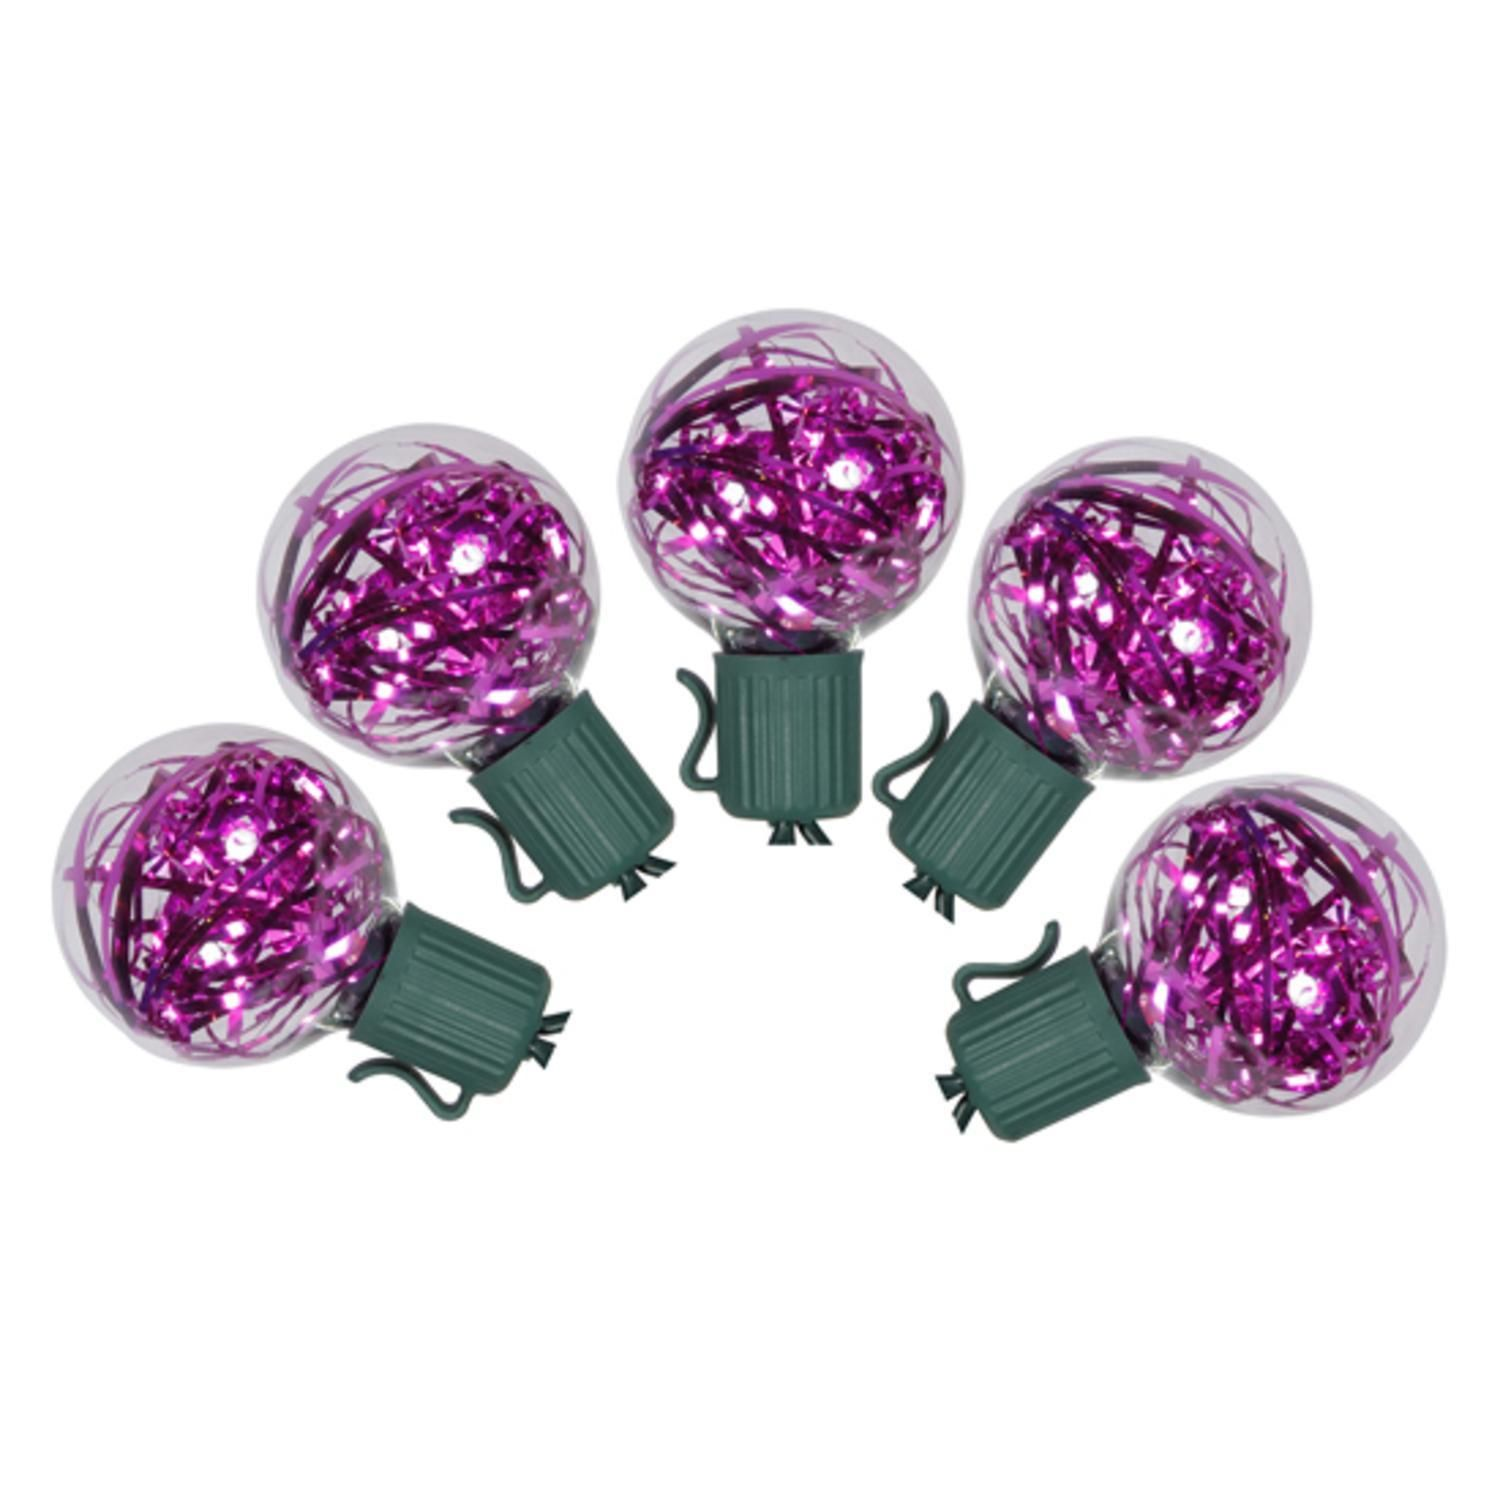 set of 25 pink led g40 tinsel christmas lights green wire [ 1500 x 1500 Pixel ]